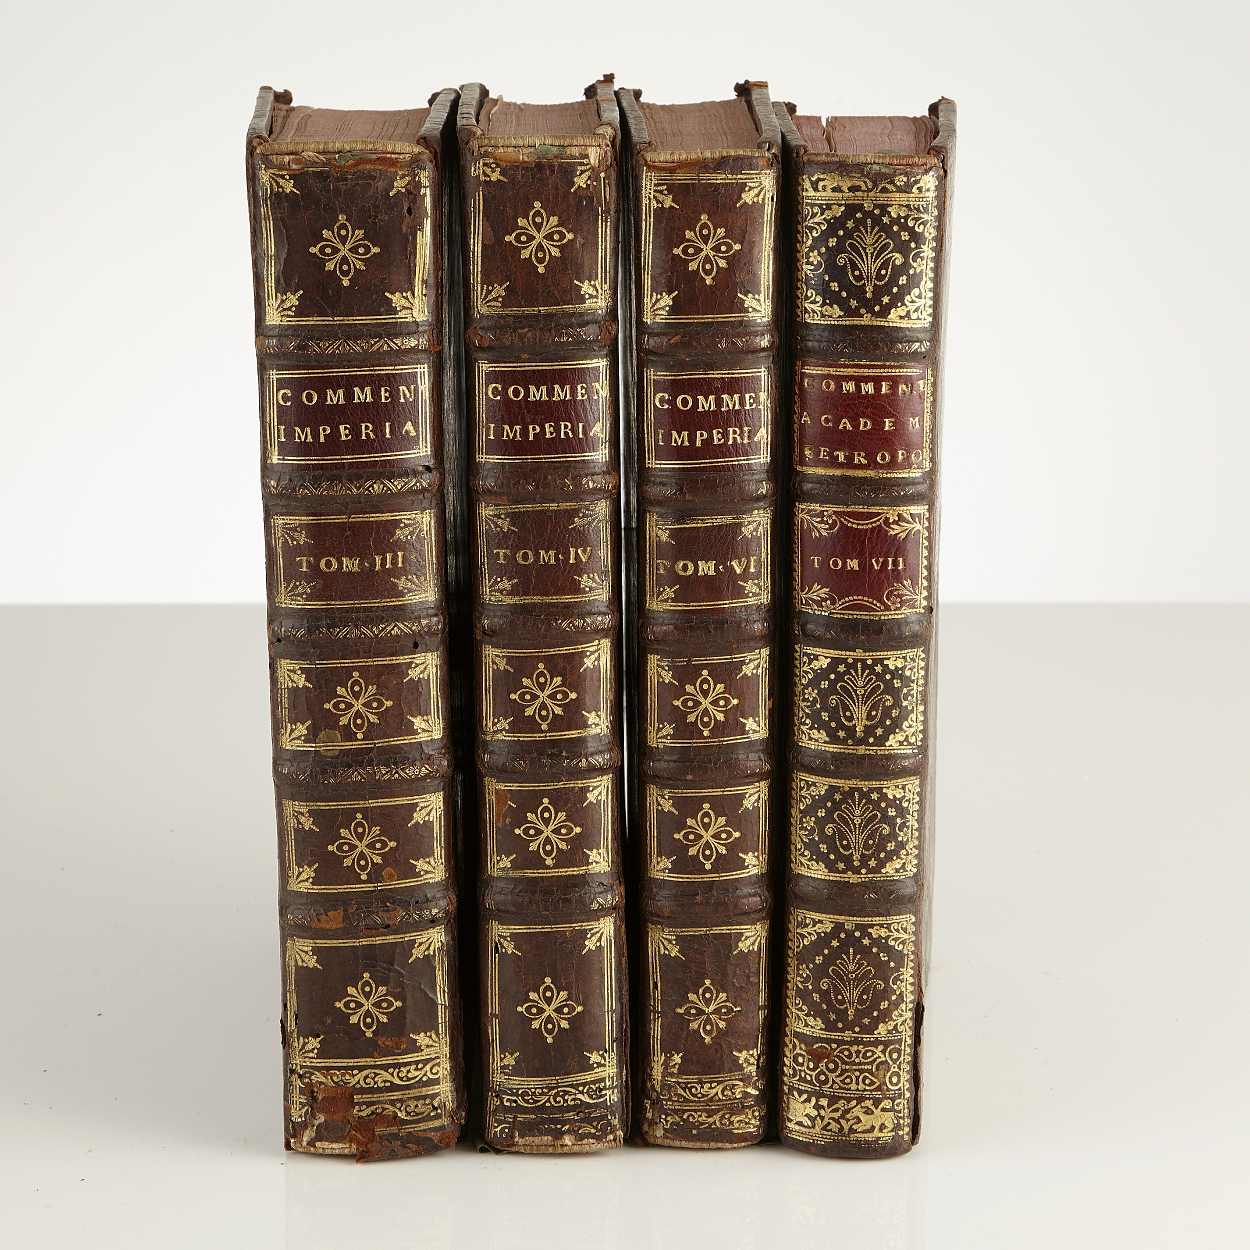 Works by G. S. Bayer 4 volumes 1733-41